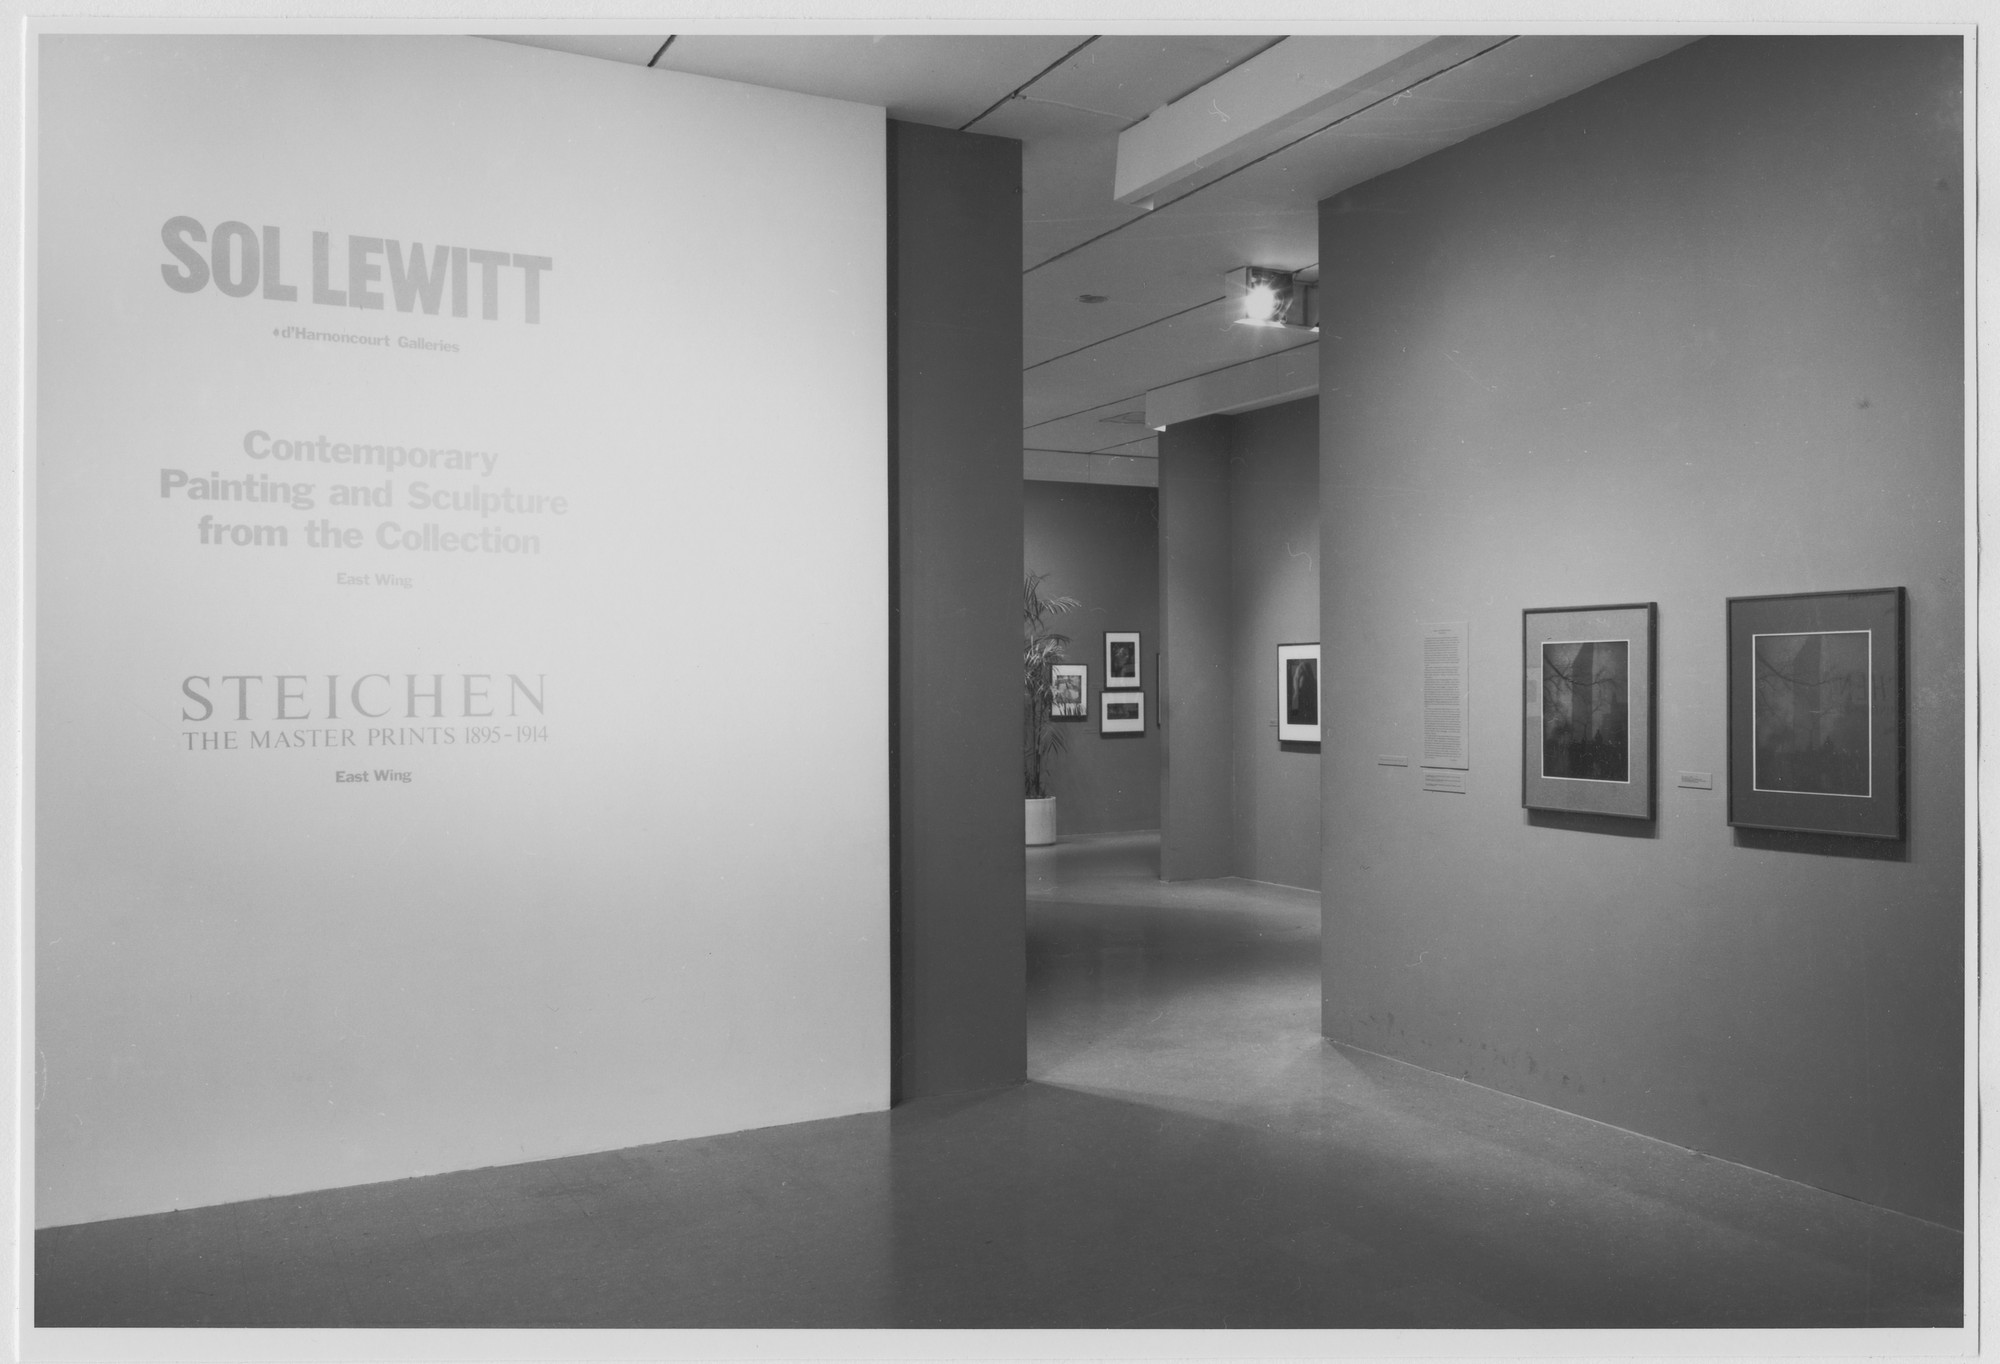 "Installation view of the exhibition, ""Steichen: The Master Prints 1895-1914"" February 14, 1978–March 28, 1978. Photographic Archive. The Museum of Modern Art Archives, New York. IN1200.1. Photograph by Mali Olatunji."